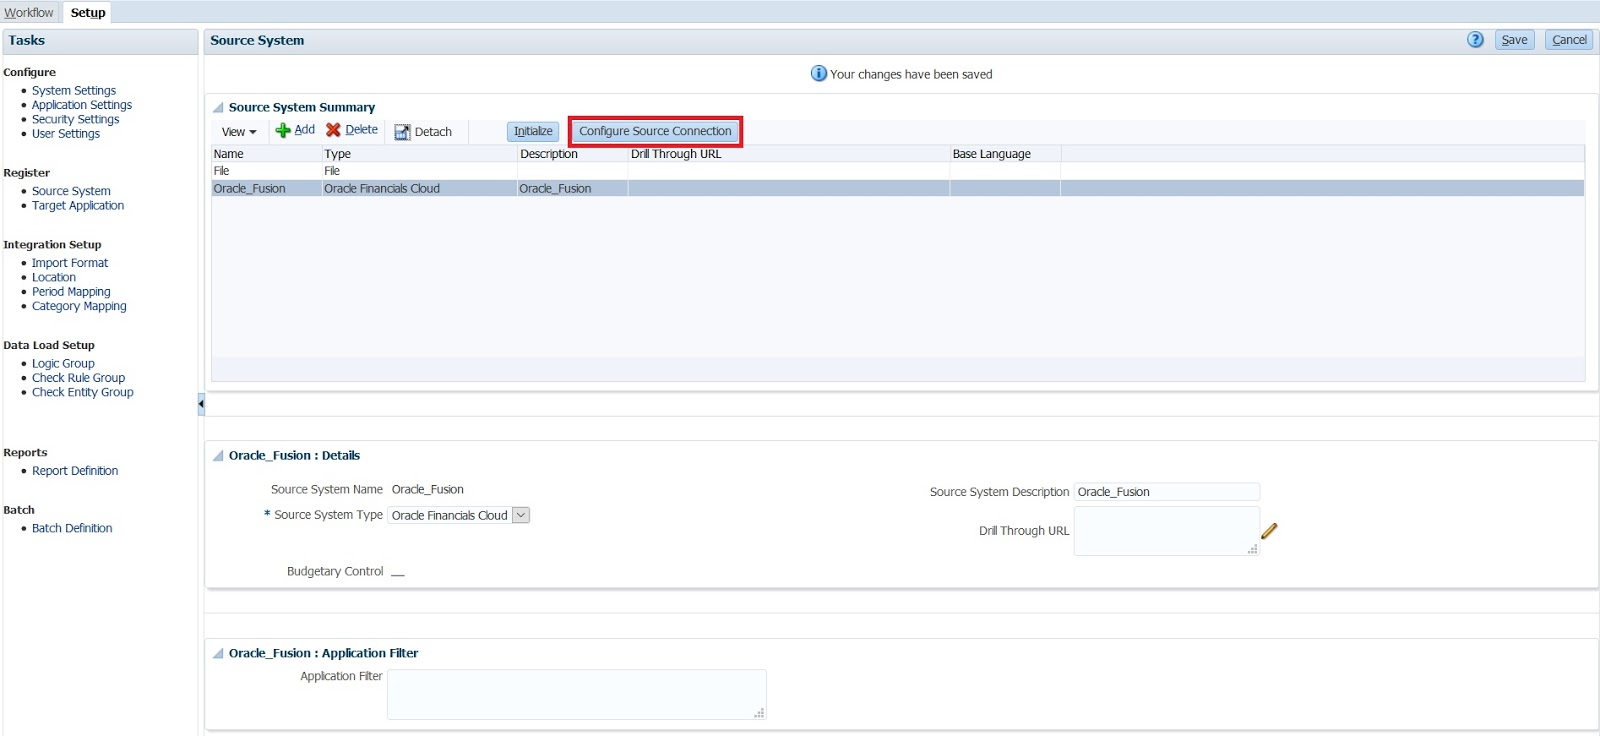 Everythin' Essbase: Integrating Oracle Financials Cloud into